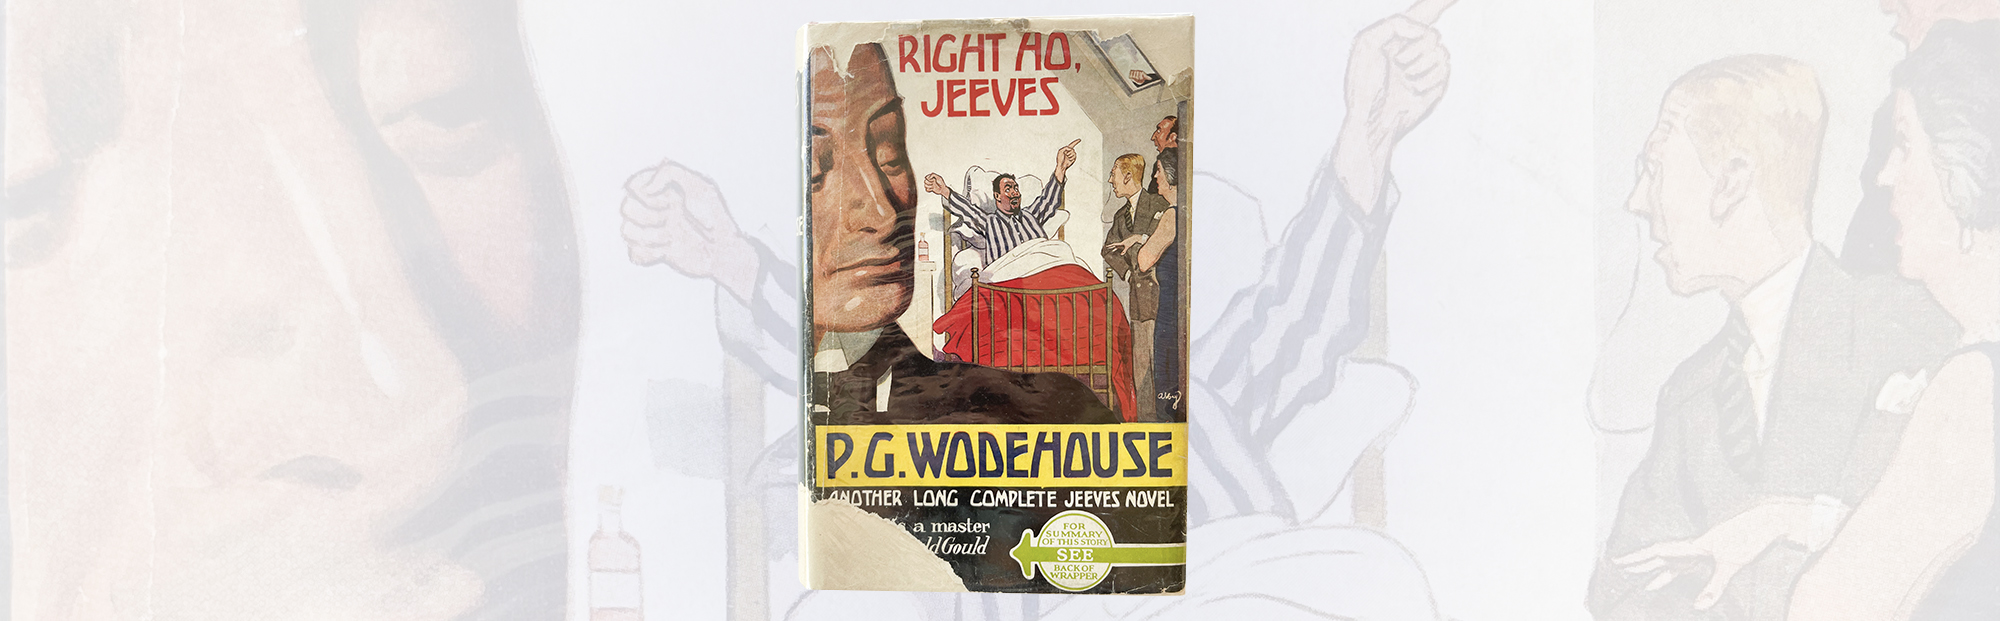 A Single-owner Collection of P.G. Wodehouse